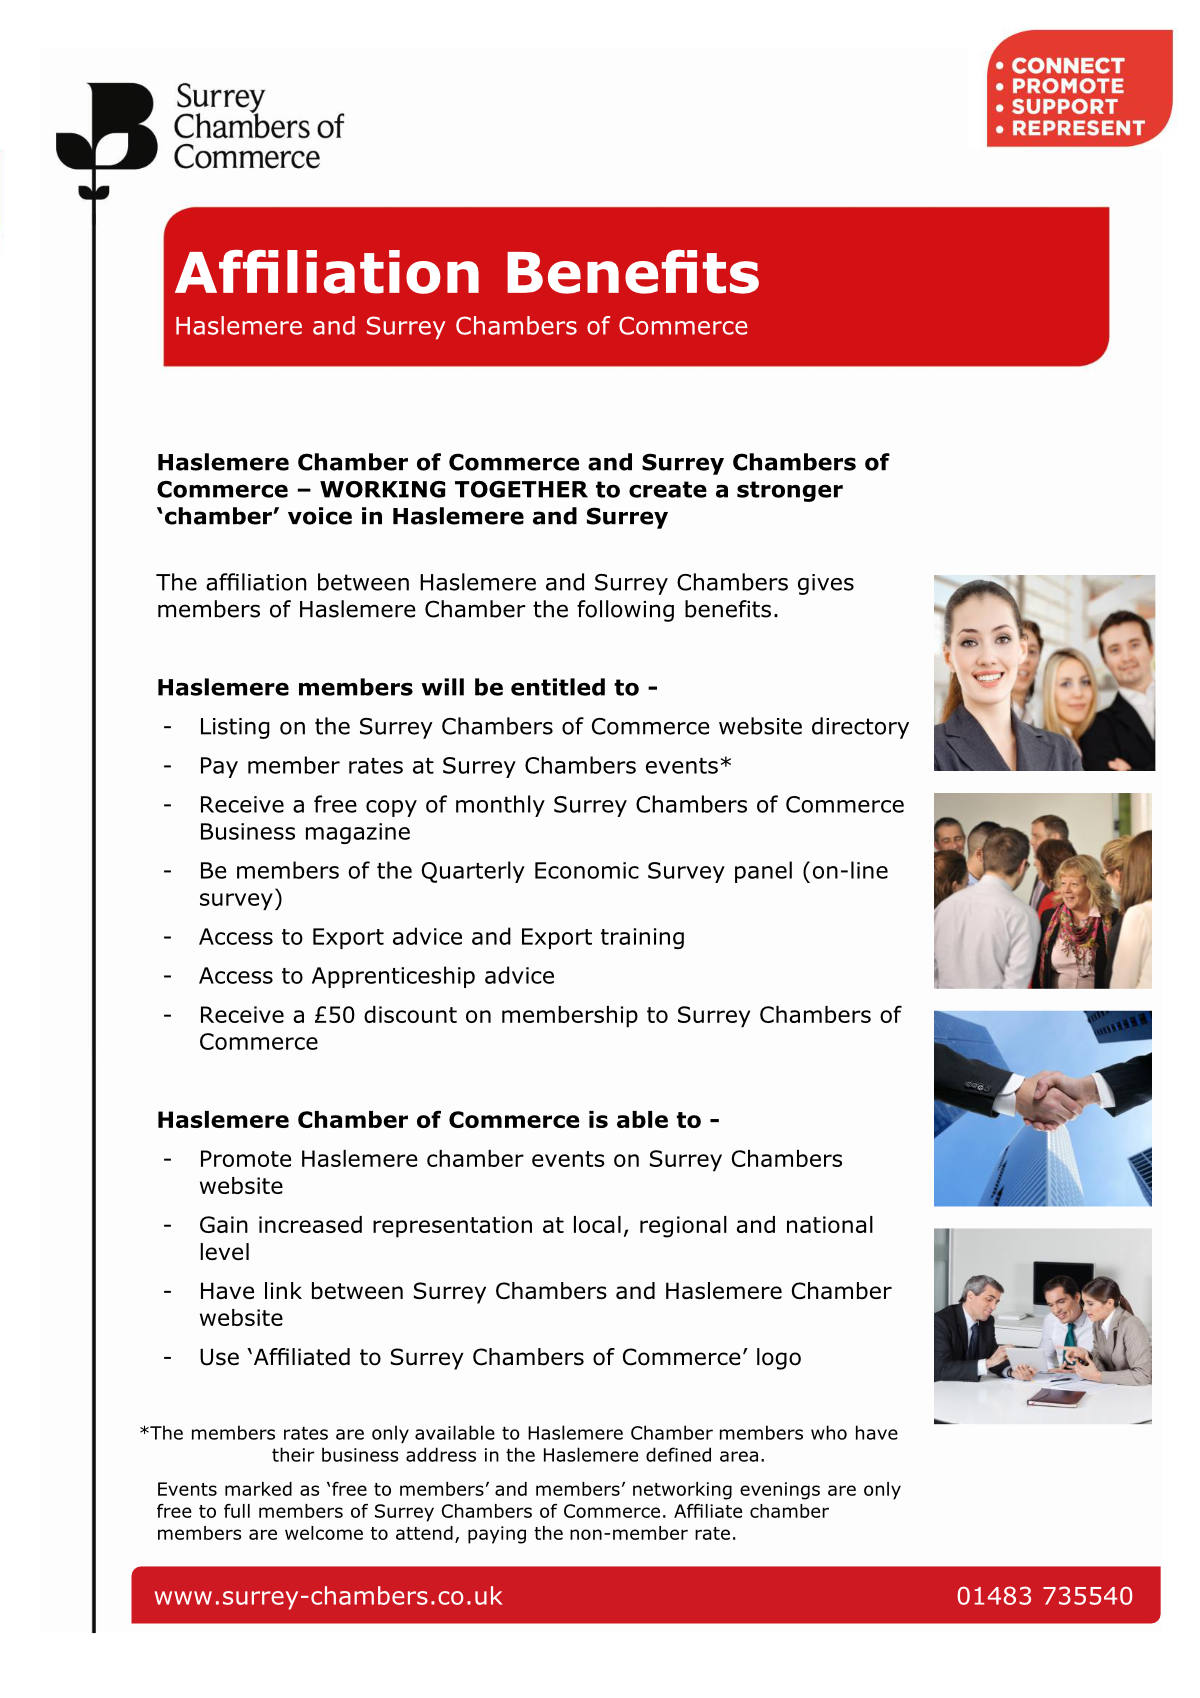 Image of the benefits of affiliation with Surrey Chambers of Commerce